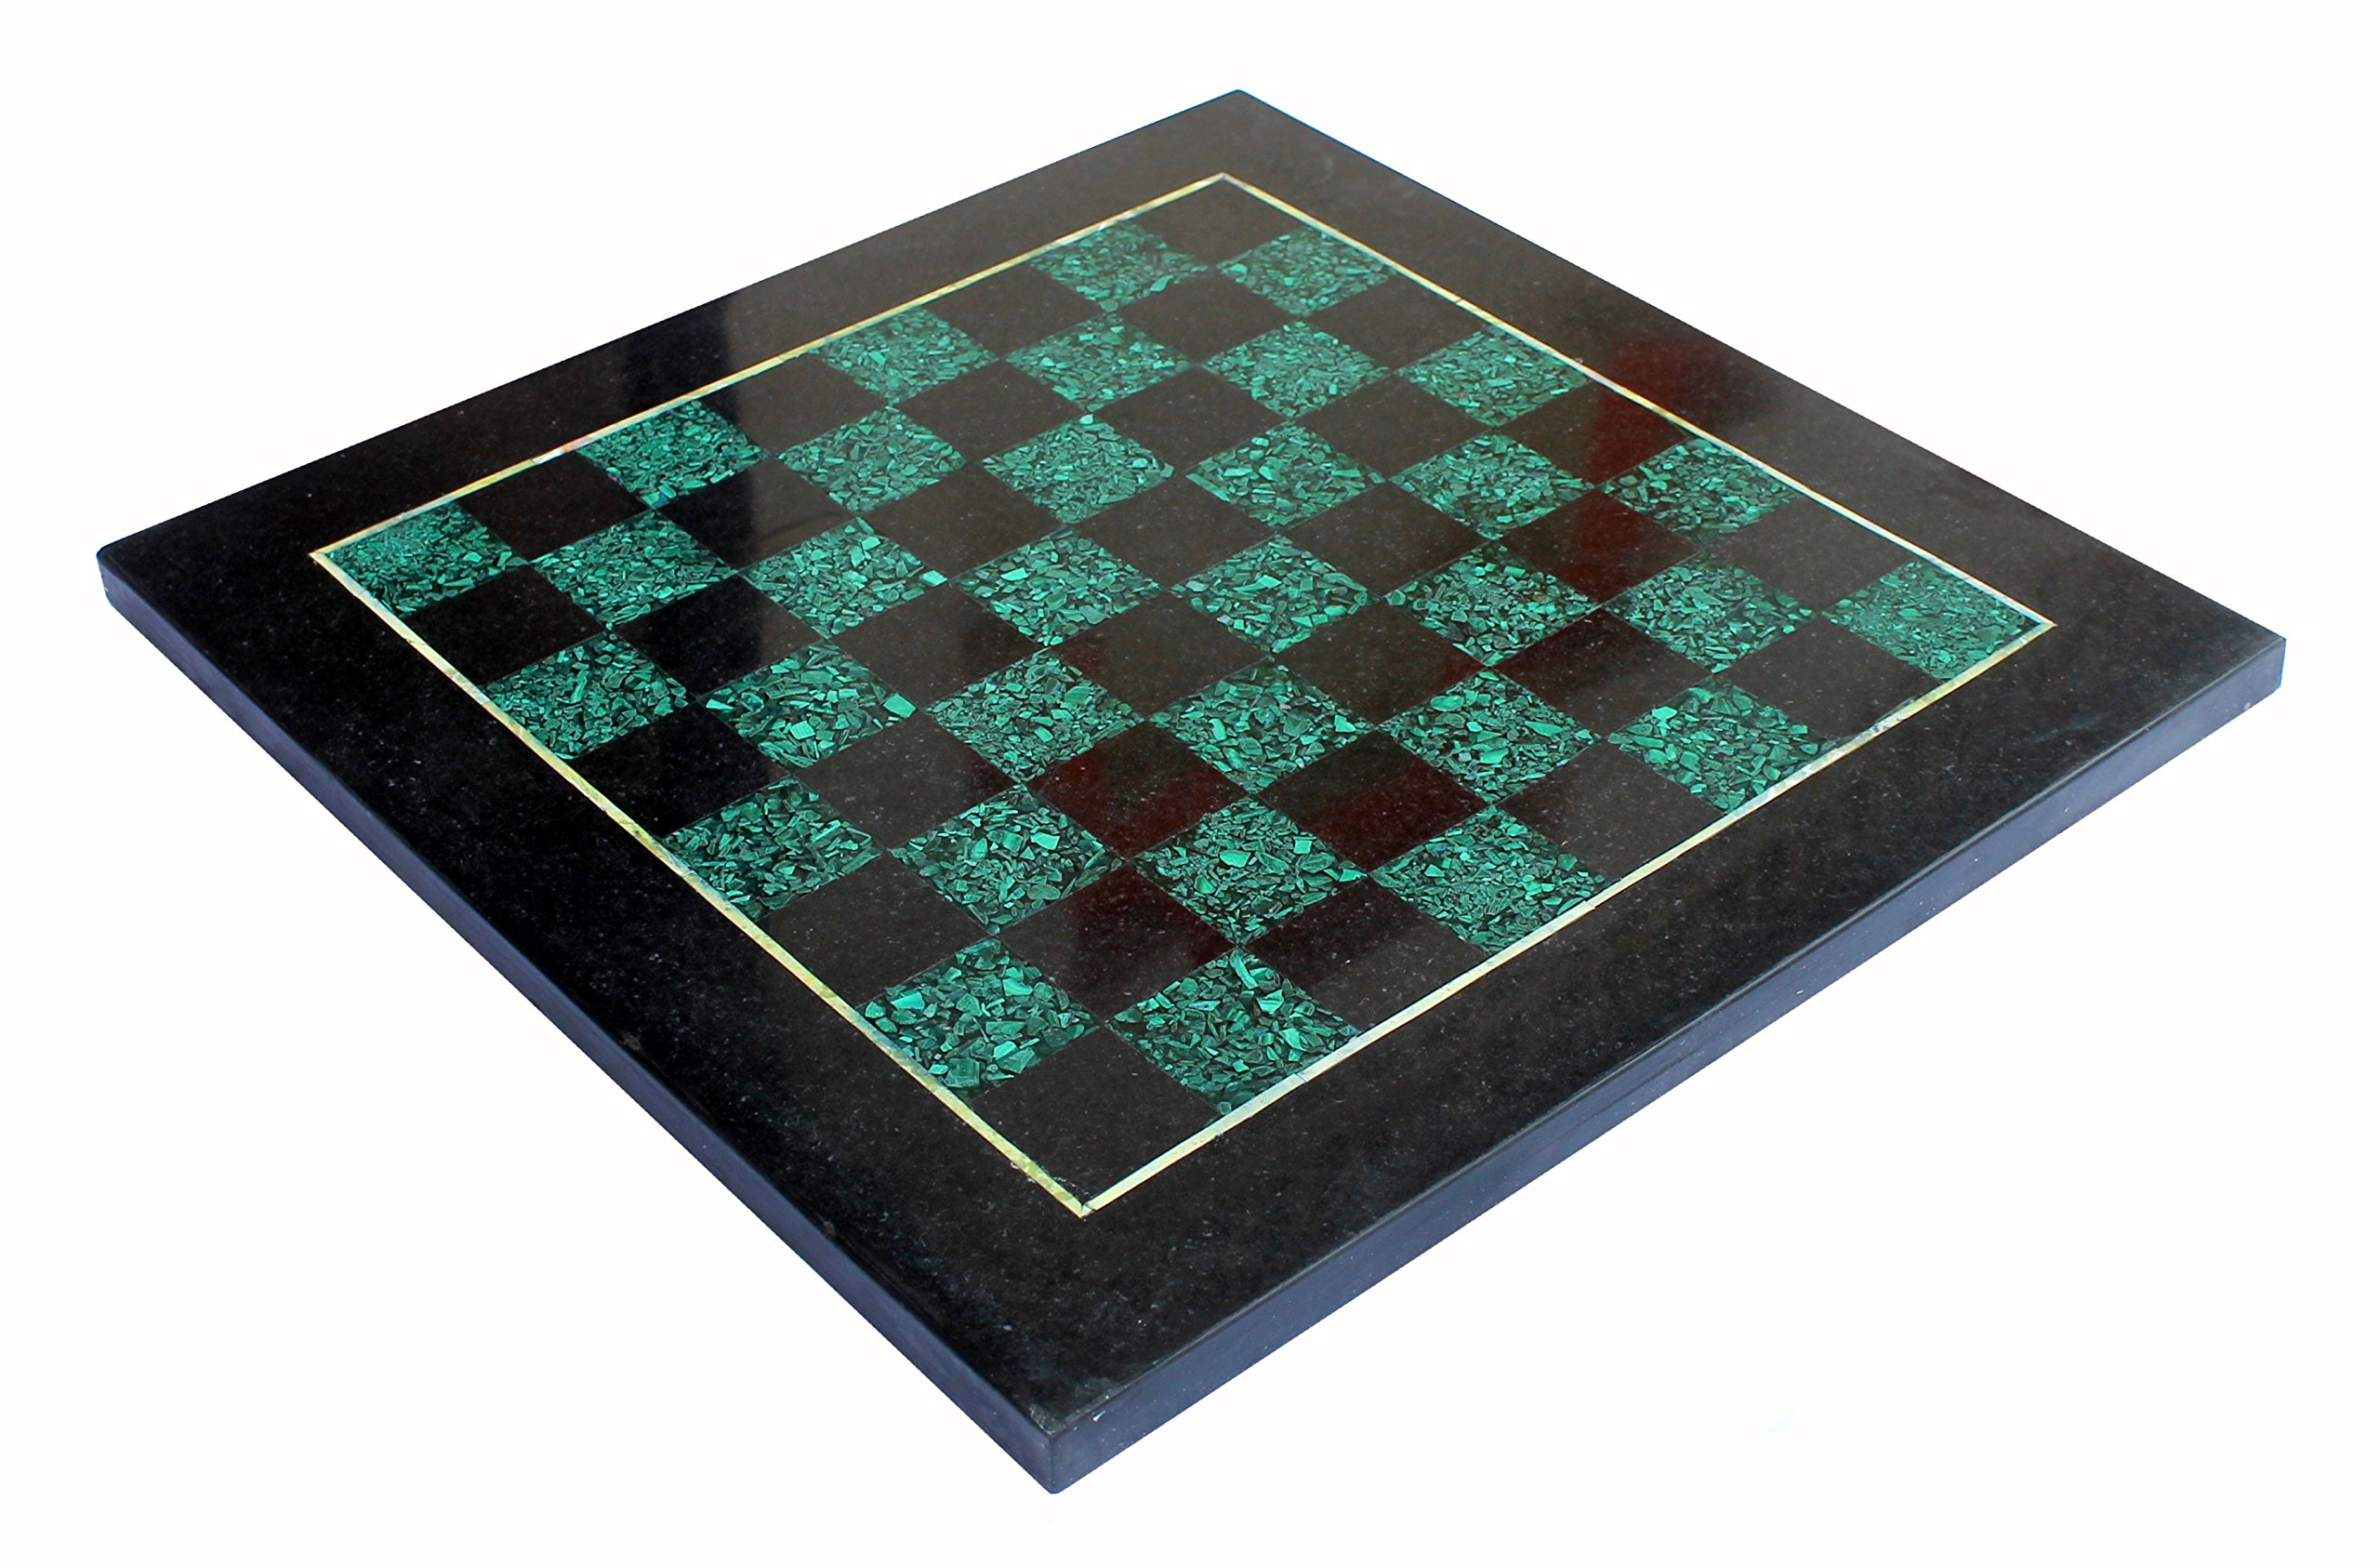 StonKraft 15'' X 15'' Collectible Black Natural Stone + Malachite & Marble Chess Board Without Pieces - Appropriate Wooden & Brass Chess Pieces Chessmen separately availabe by StonKraft Brand by StonKraft (Image #3)